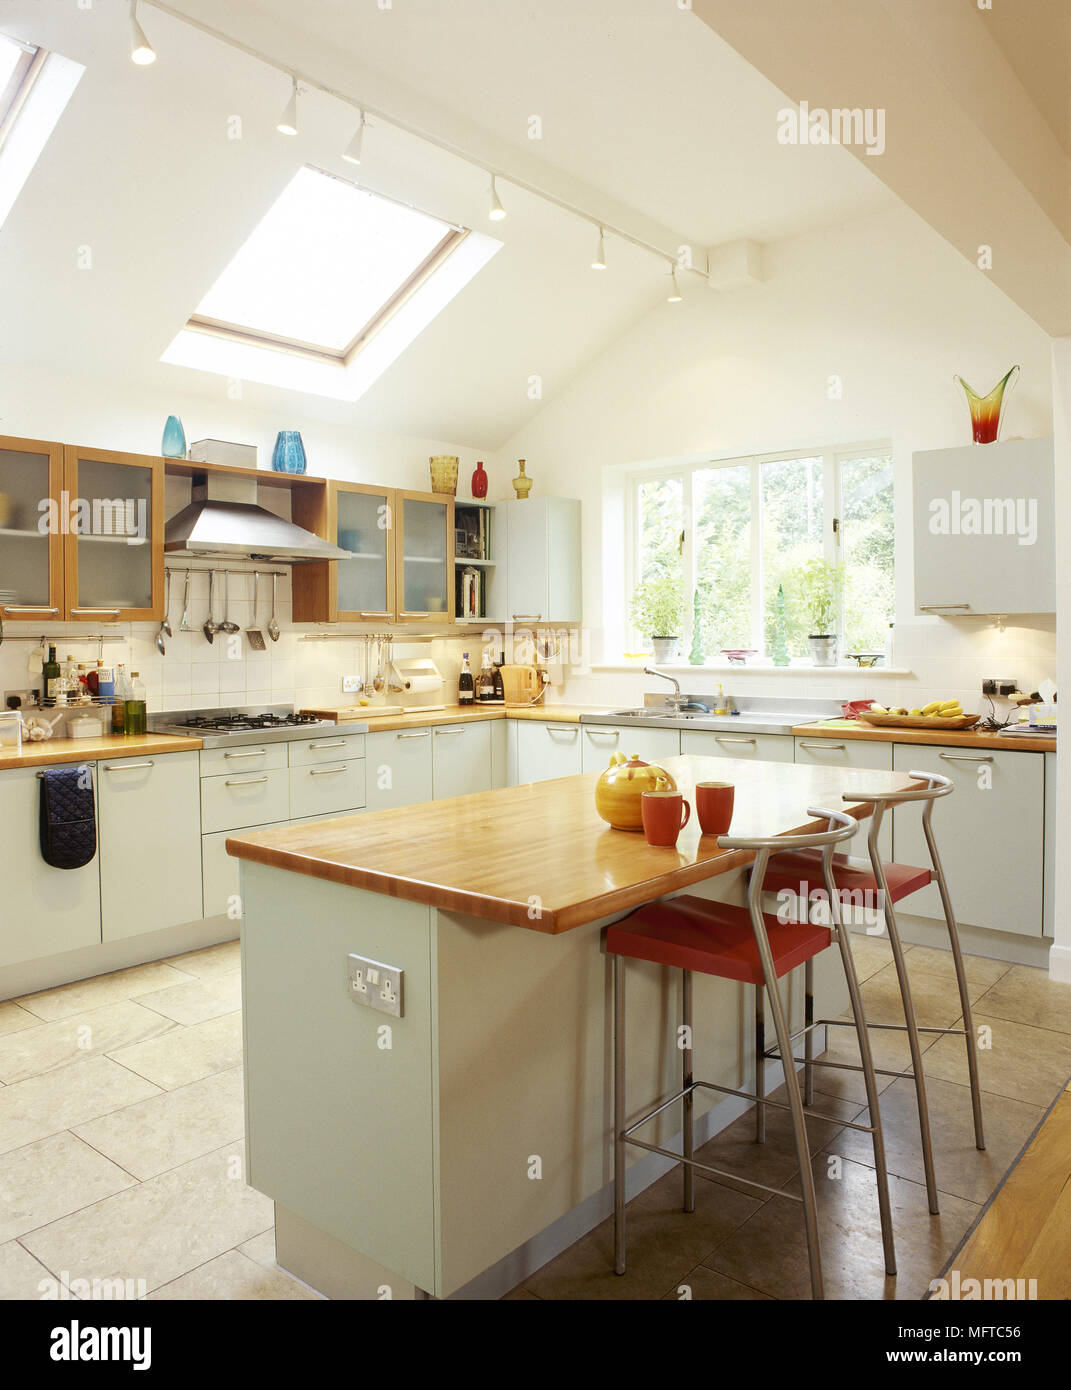 Modern Kitchen With White Cabinets Central Island Breakfast Bar Tile Floor And A Pitched Ceiling With Skylights Stock Photo Alamy